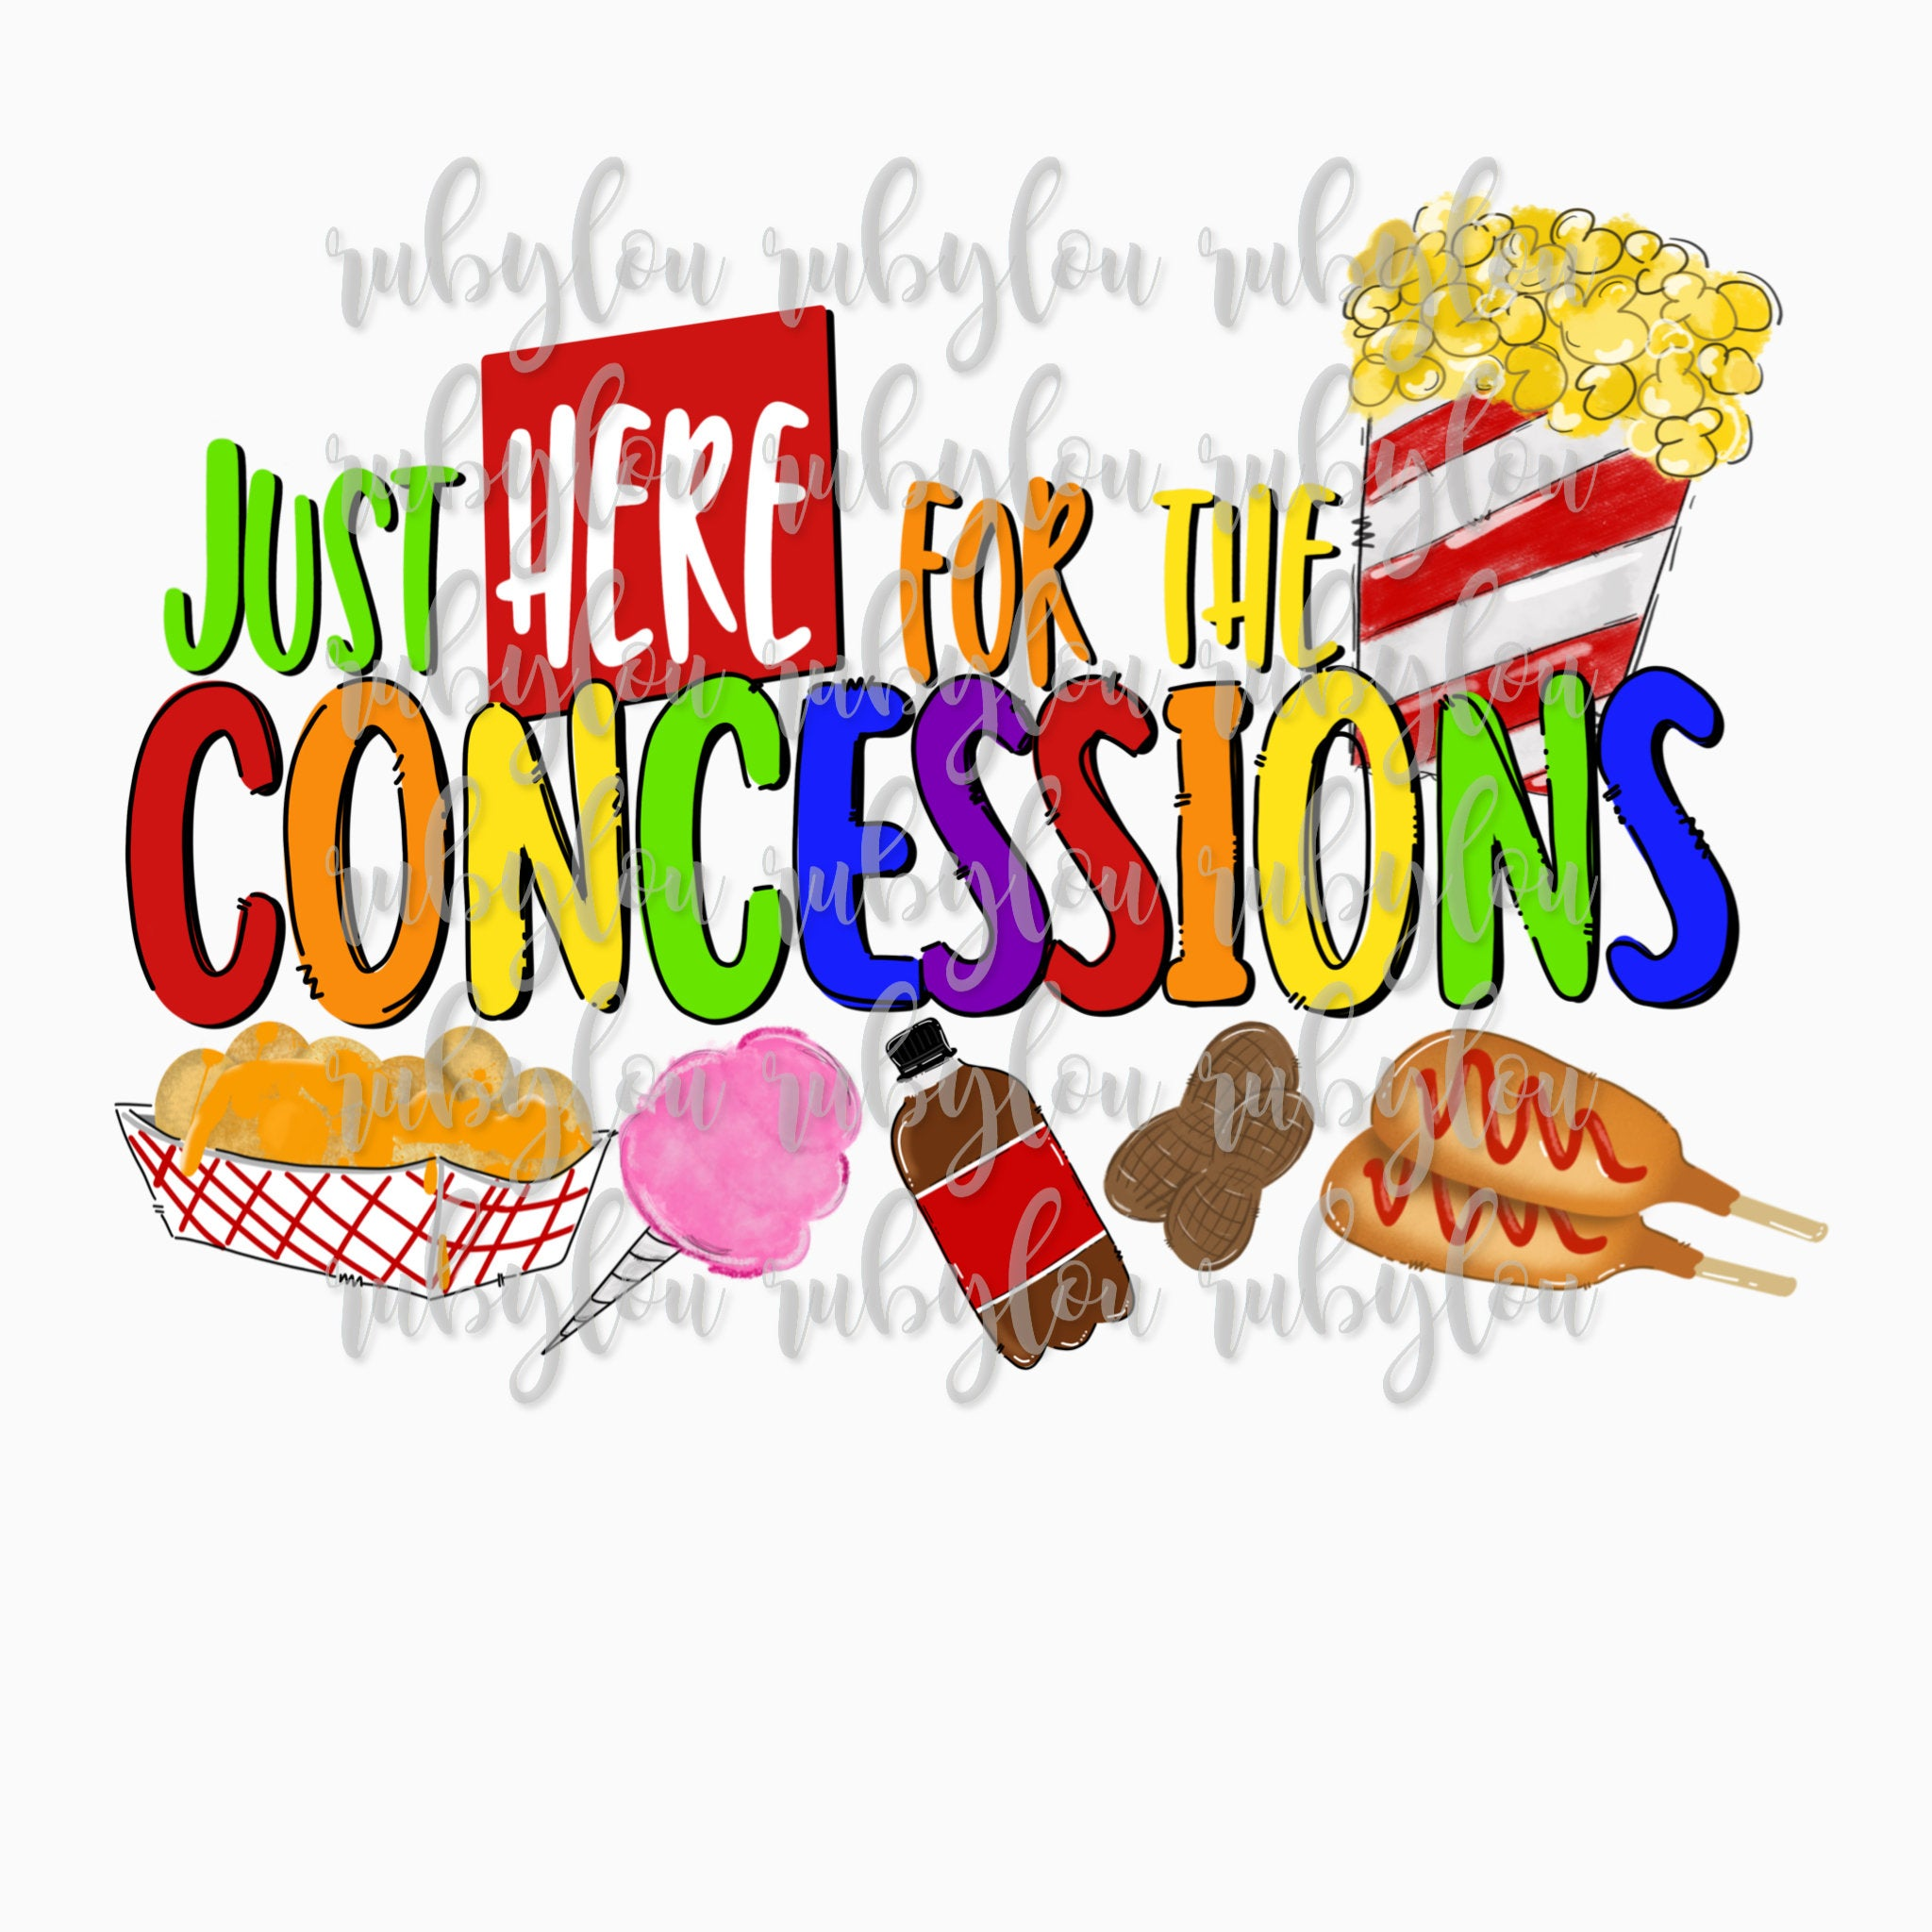 Nachos clipart concession stand. Just here for the